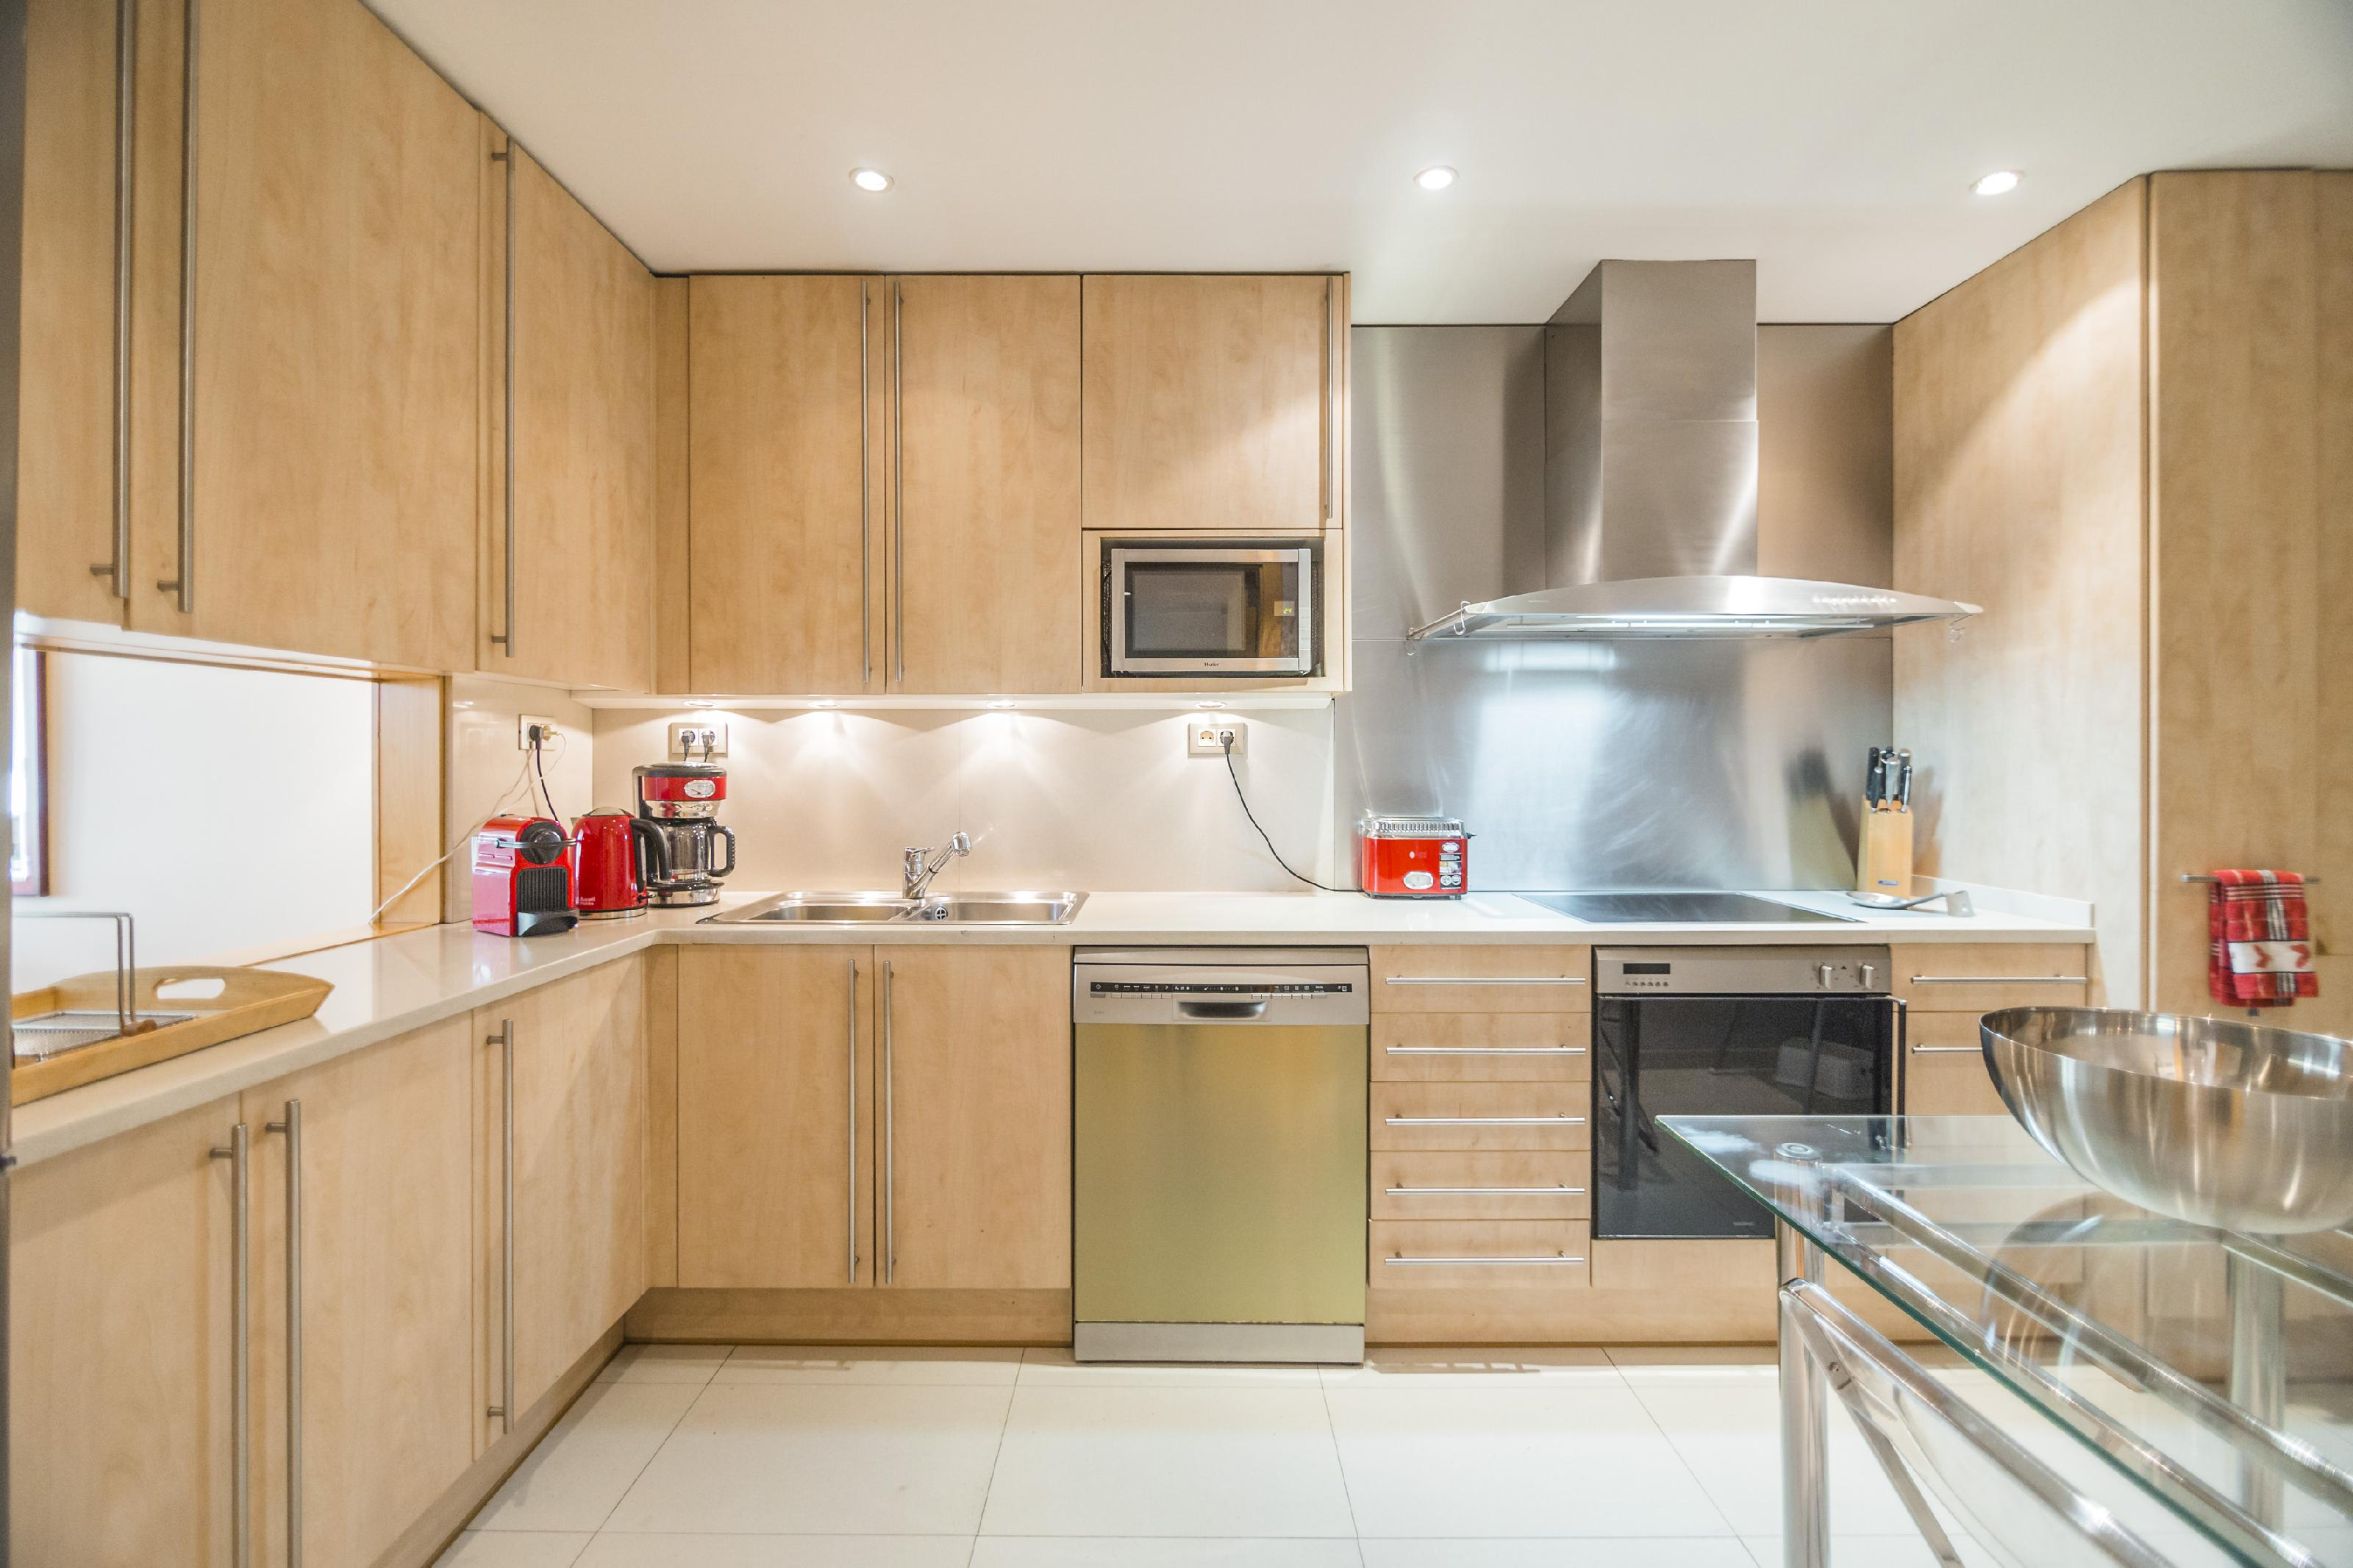 109651 Apartment for sale in Eixample, Dreta Eixample 5